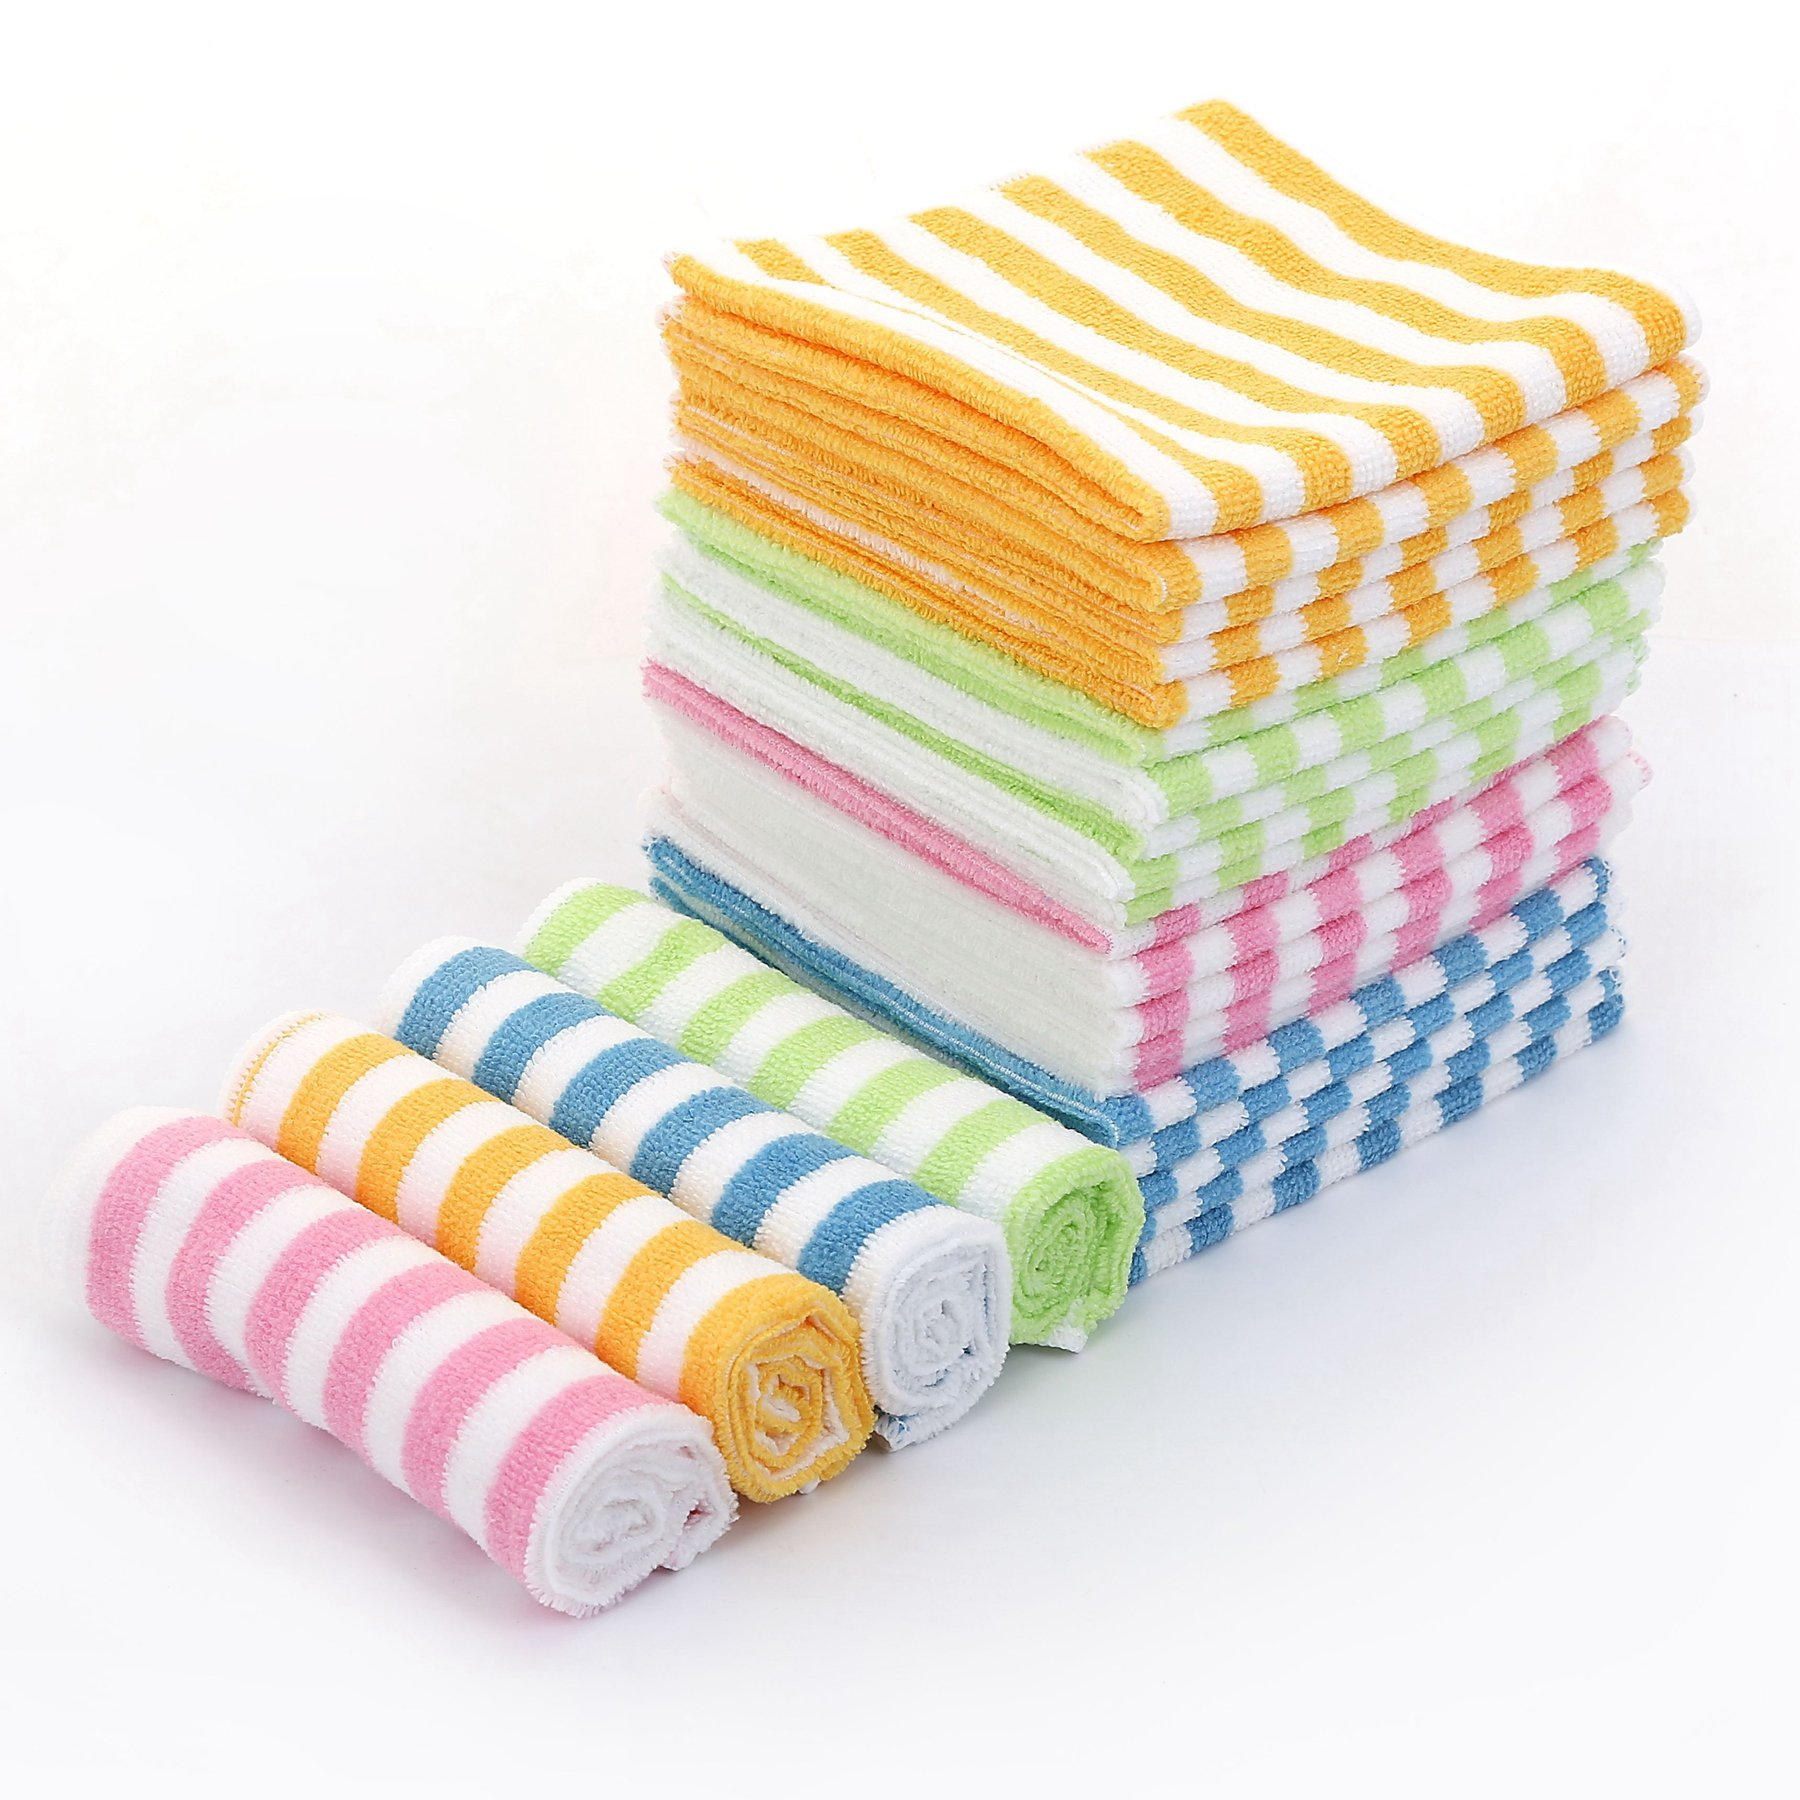 """Microfiber Cleaning Cloth – HijiNa, Pack of 50, Size 12""""x12"""", for cleaning tasks in the Kitchen, Bathroom, Dining Room and More (Bar - 4 Color Pack of 50)"""